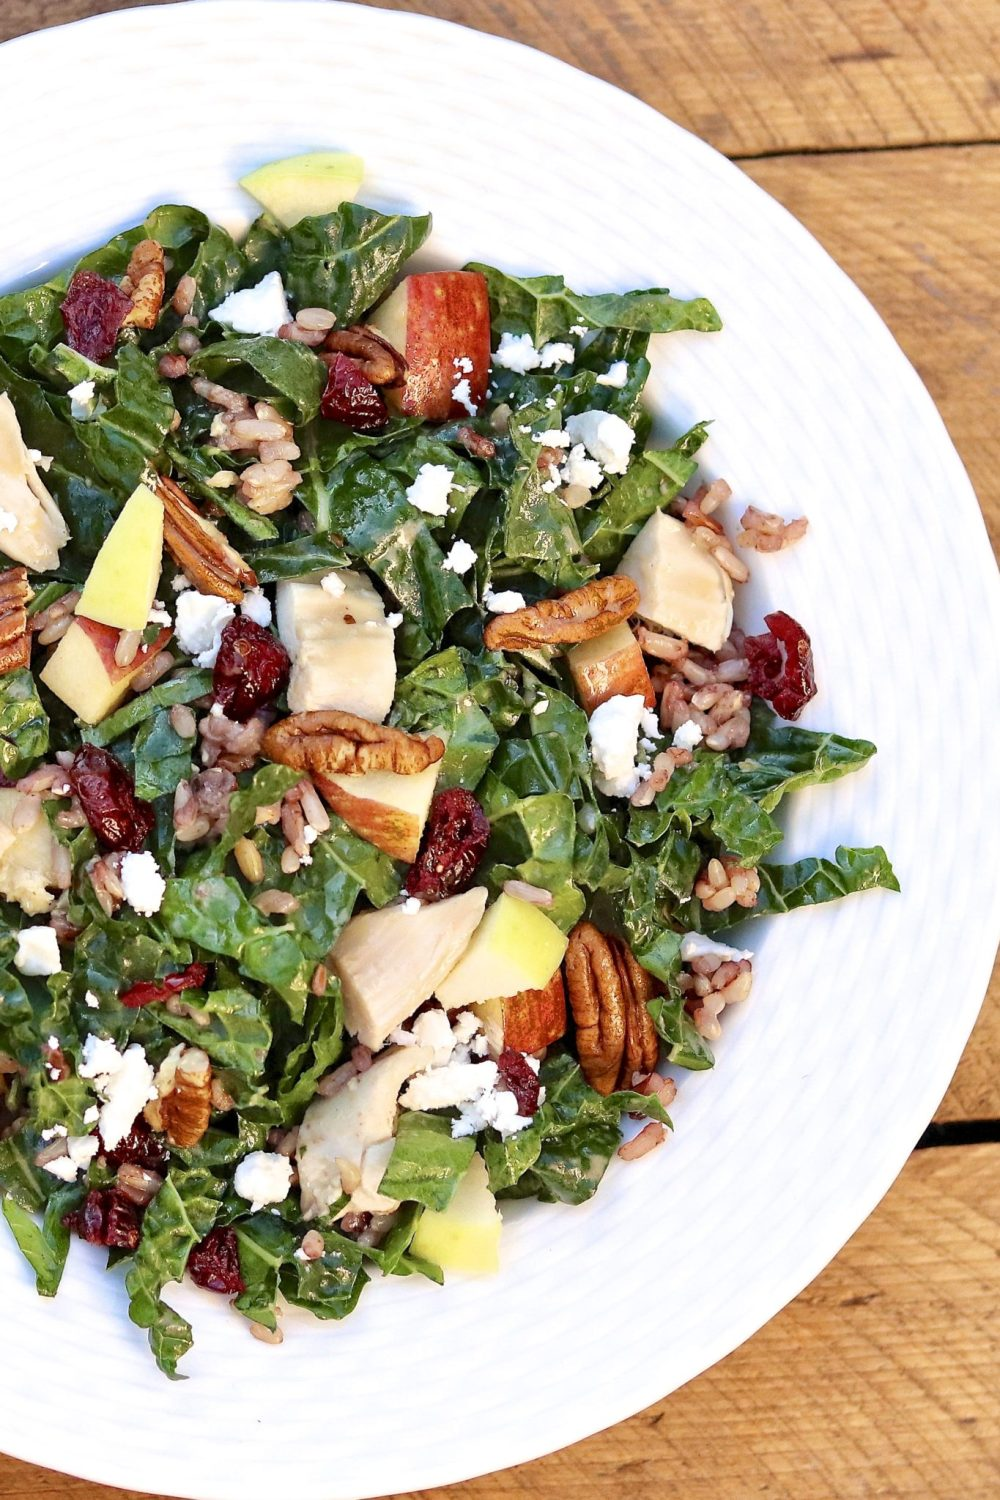 Turkey (or Chicken), Kale & Wild Rice Salad is a healthy, super satisfying way to turnleftovers into a complete meal. Perfect for a post-holiday detox or clean eating (that tastes great!) any time of year.